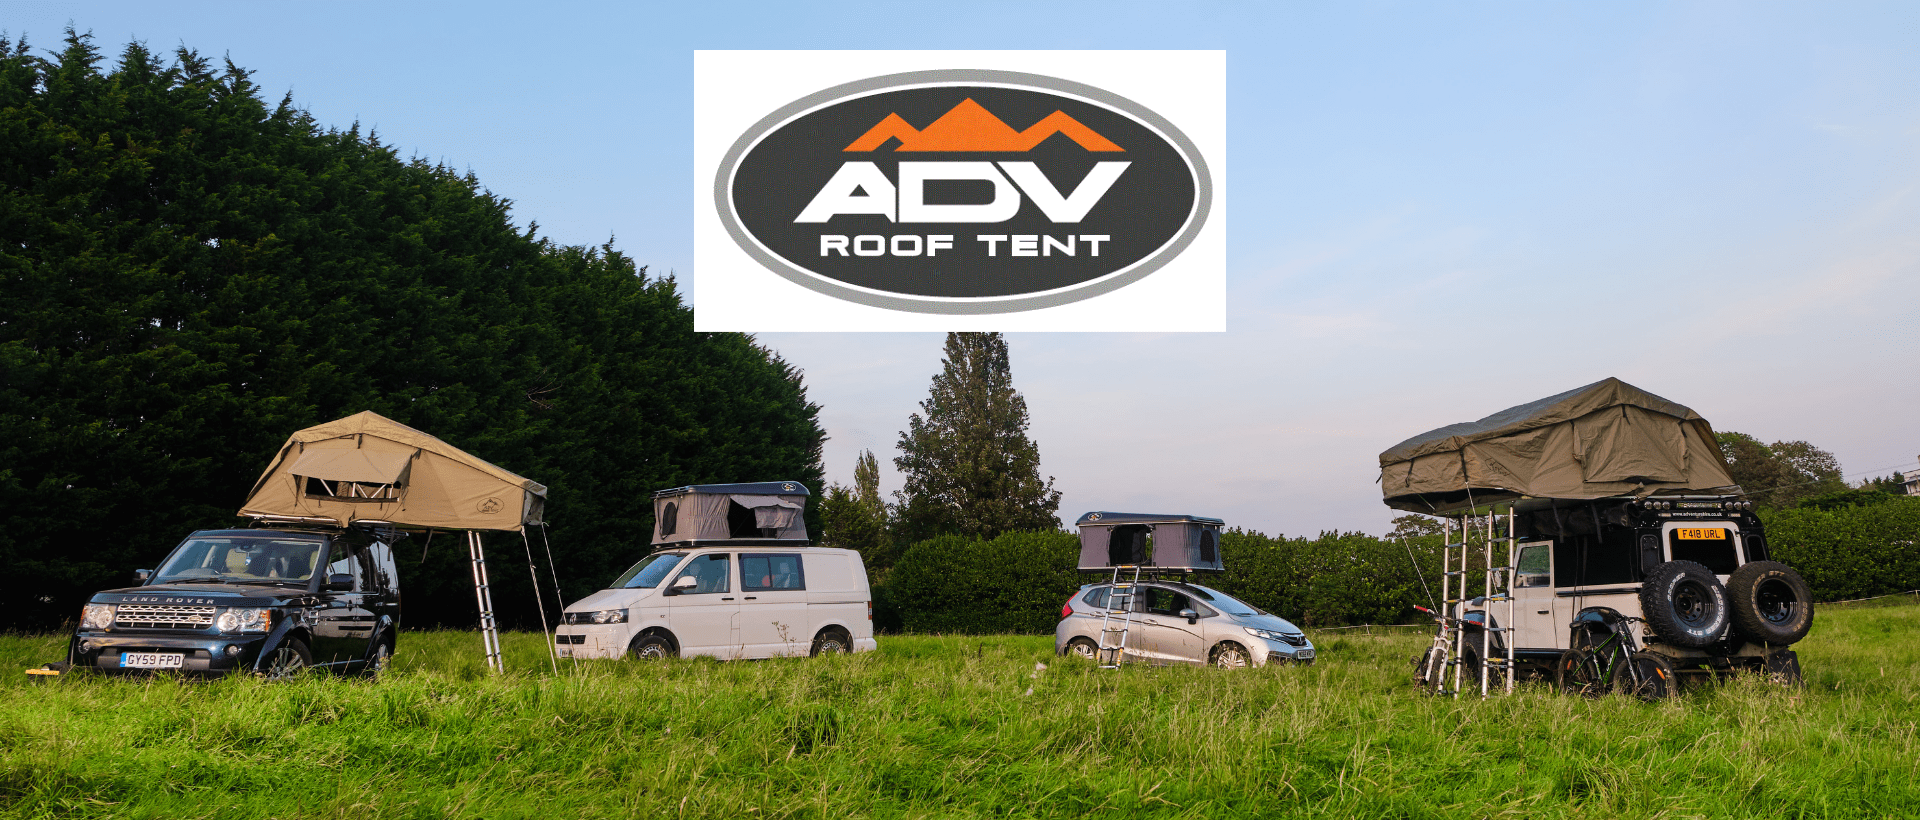 ADV ROOF TENT